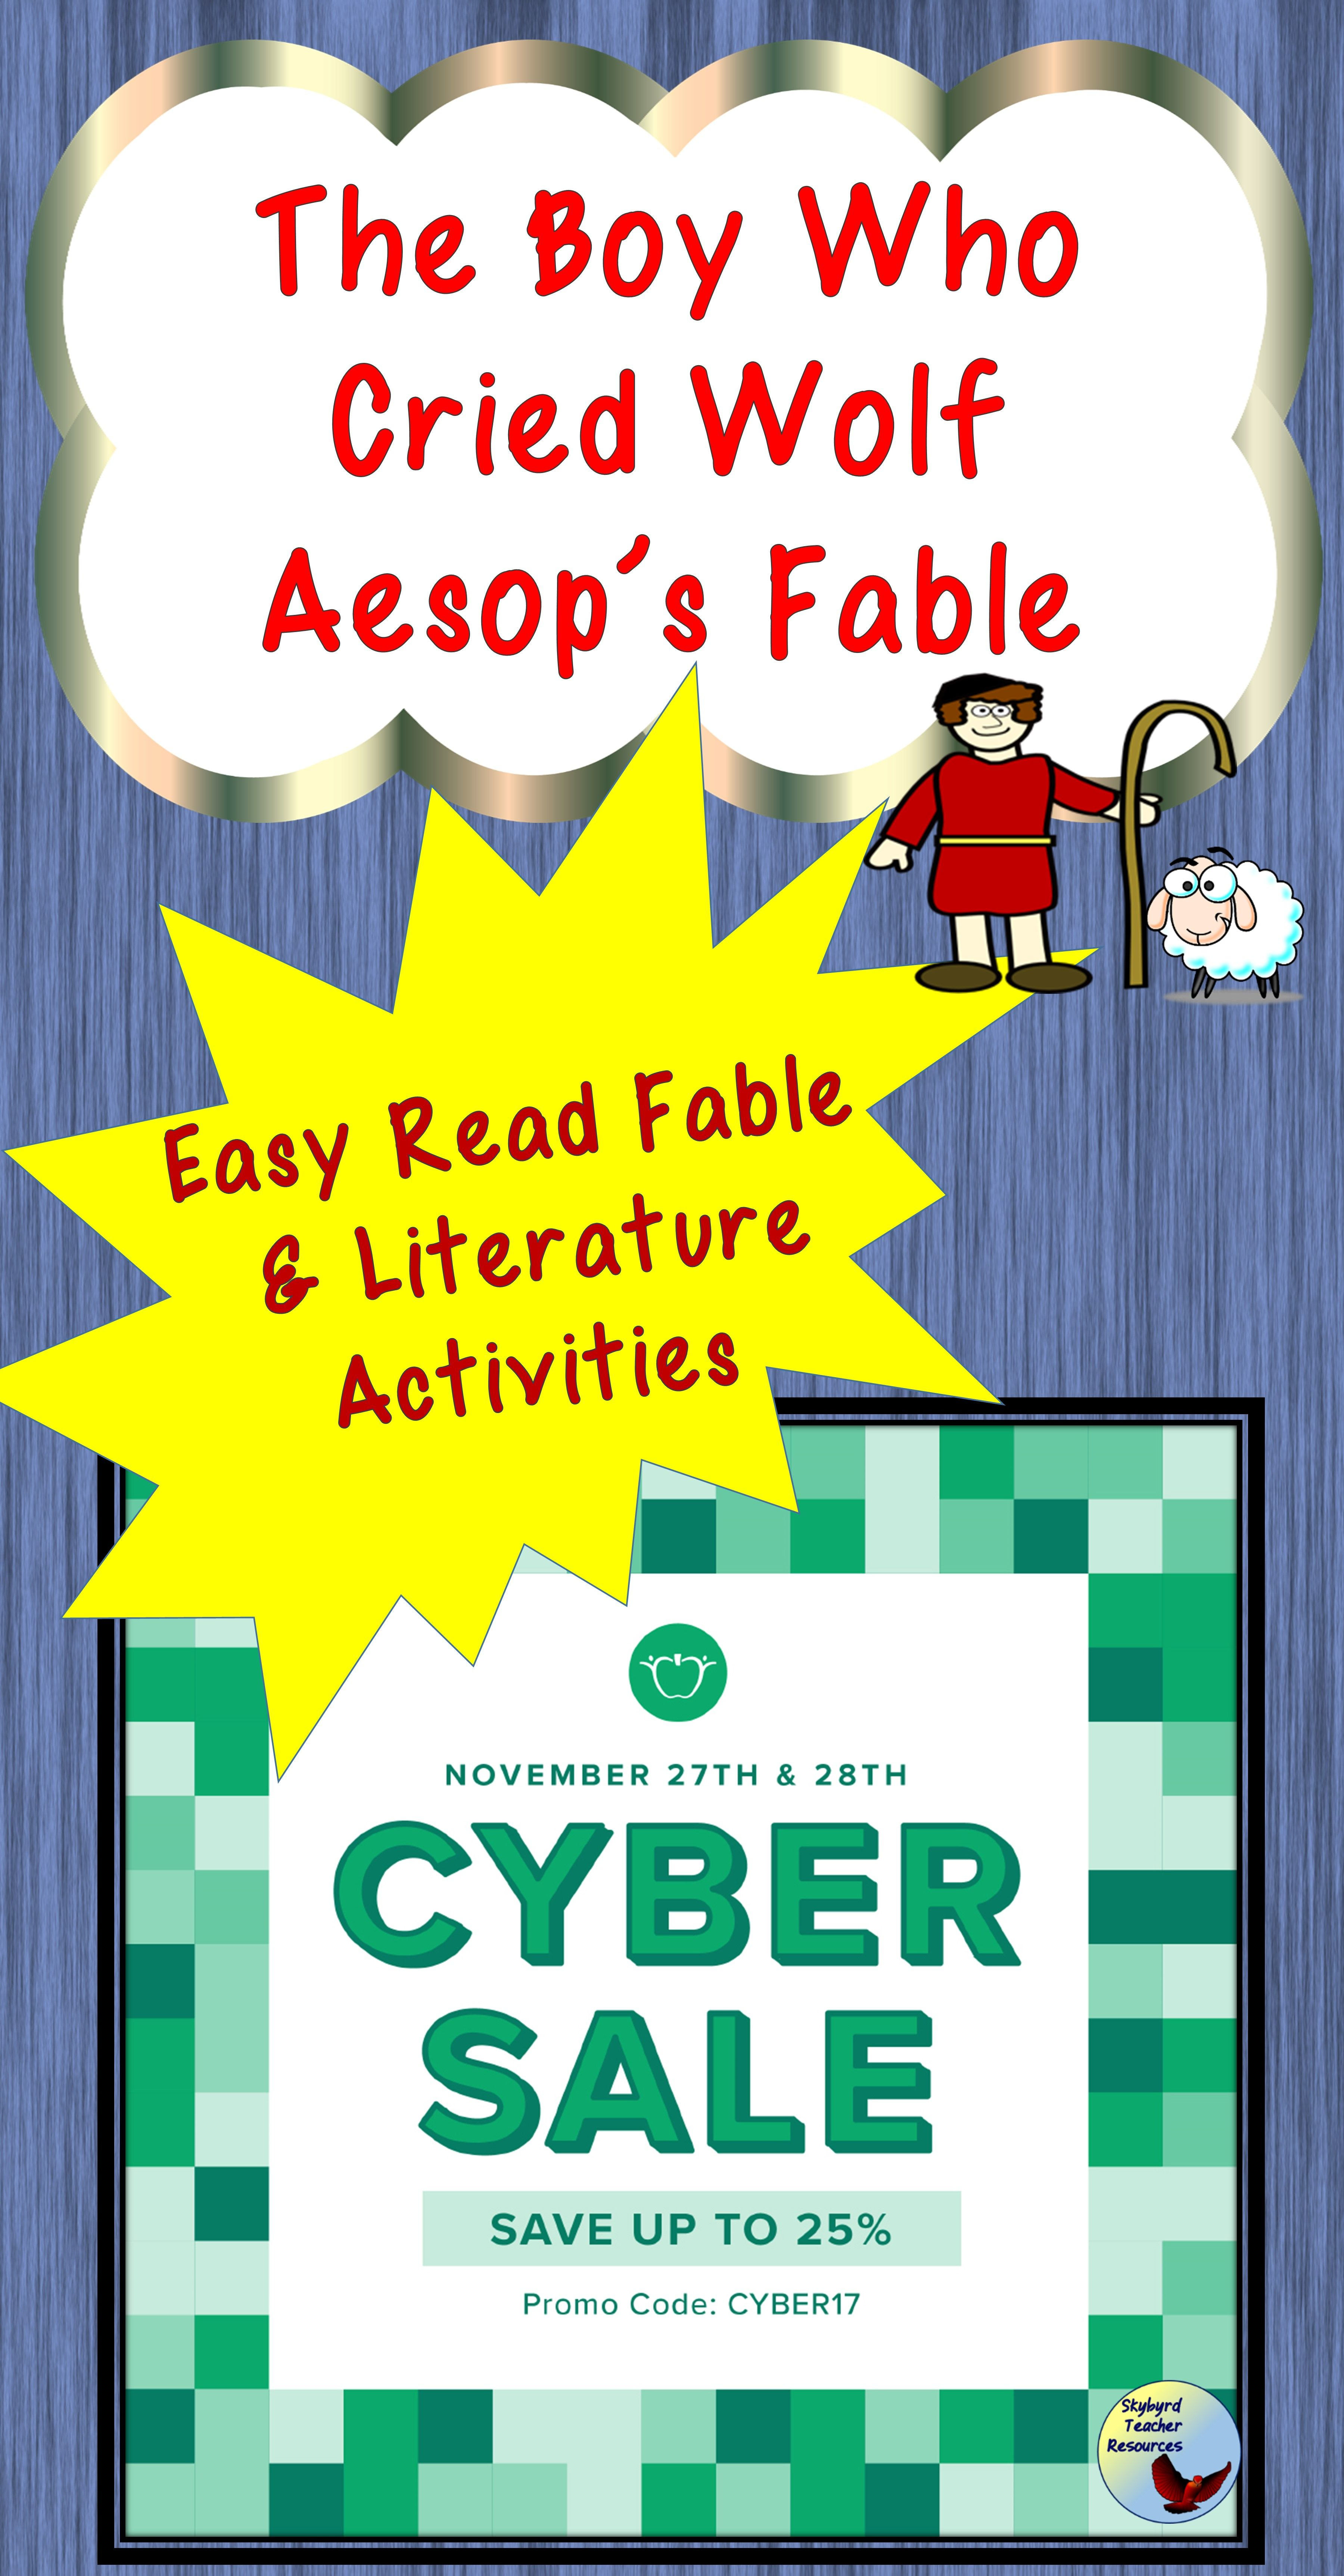 The Boy Who Cried Wolf Aesop Fable Activities Great For